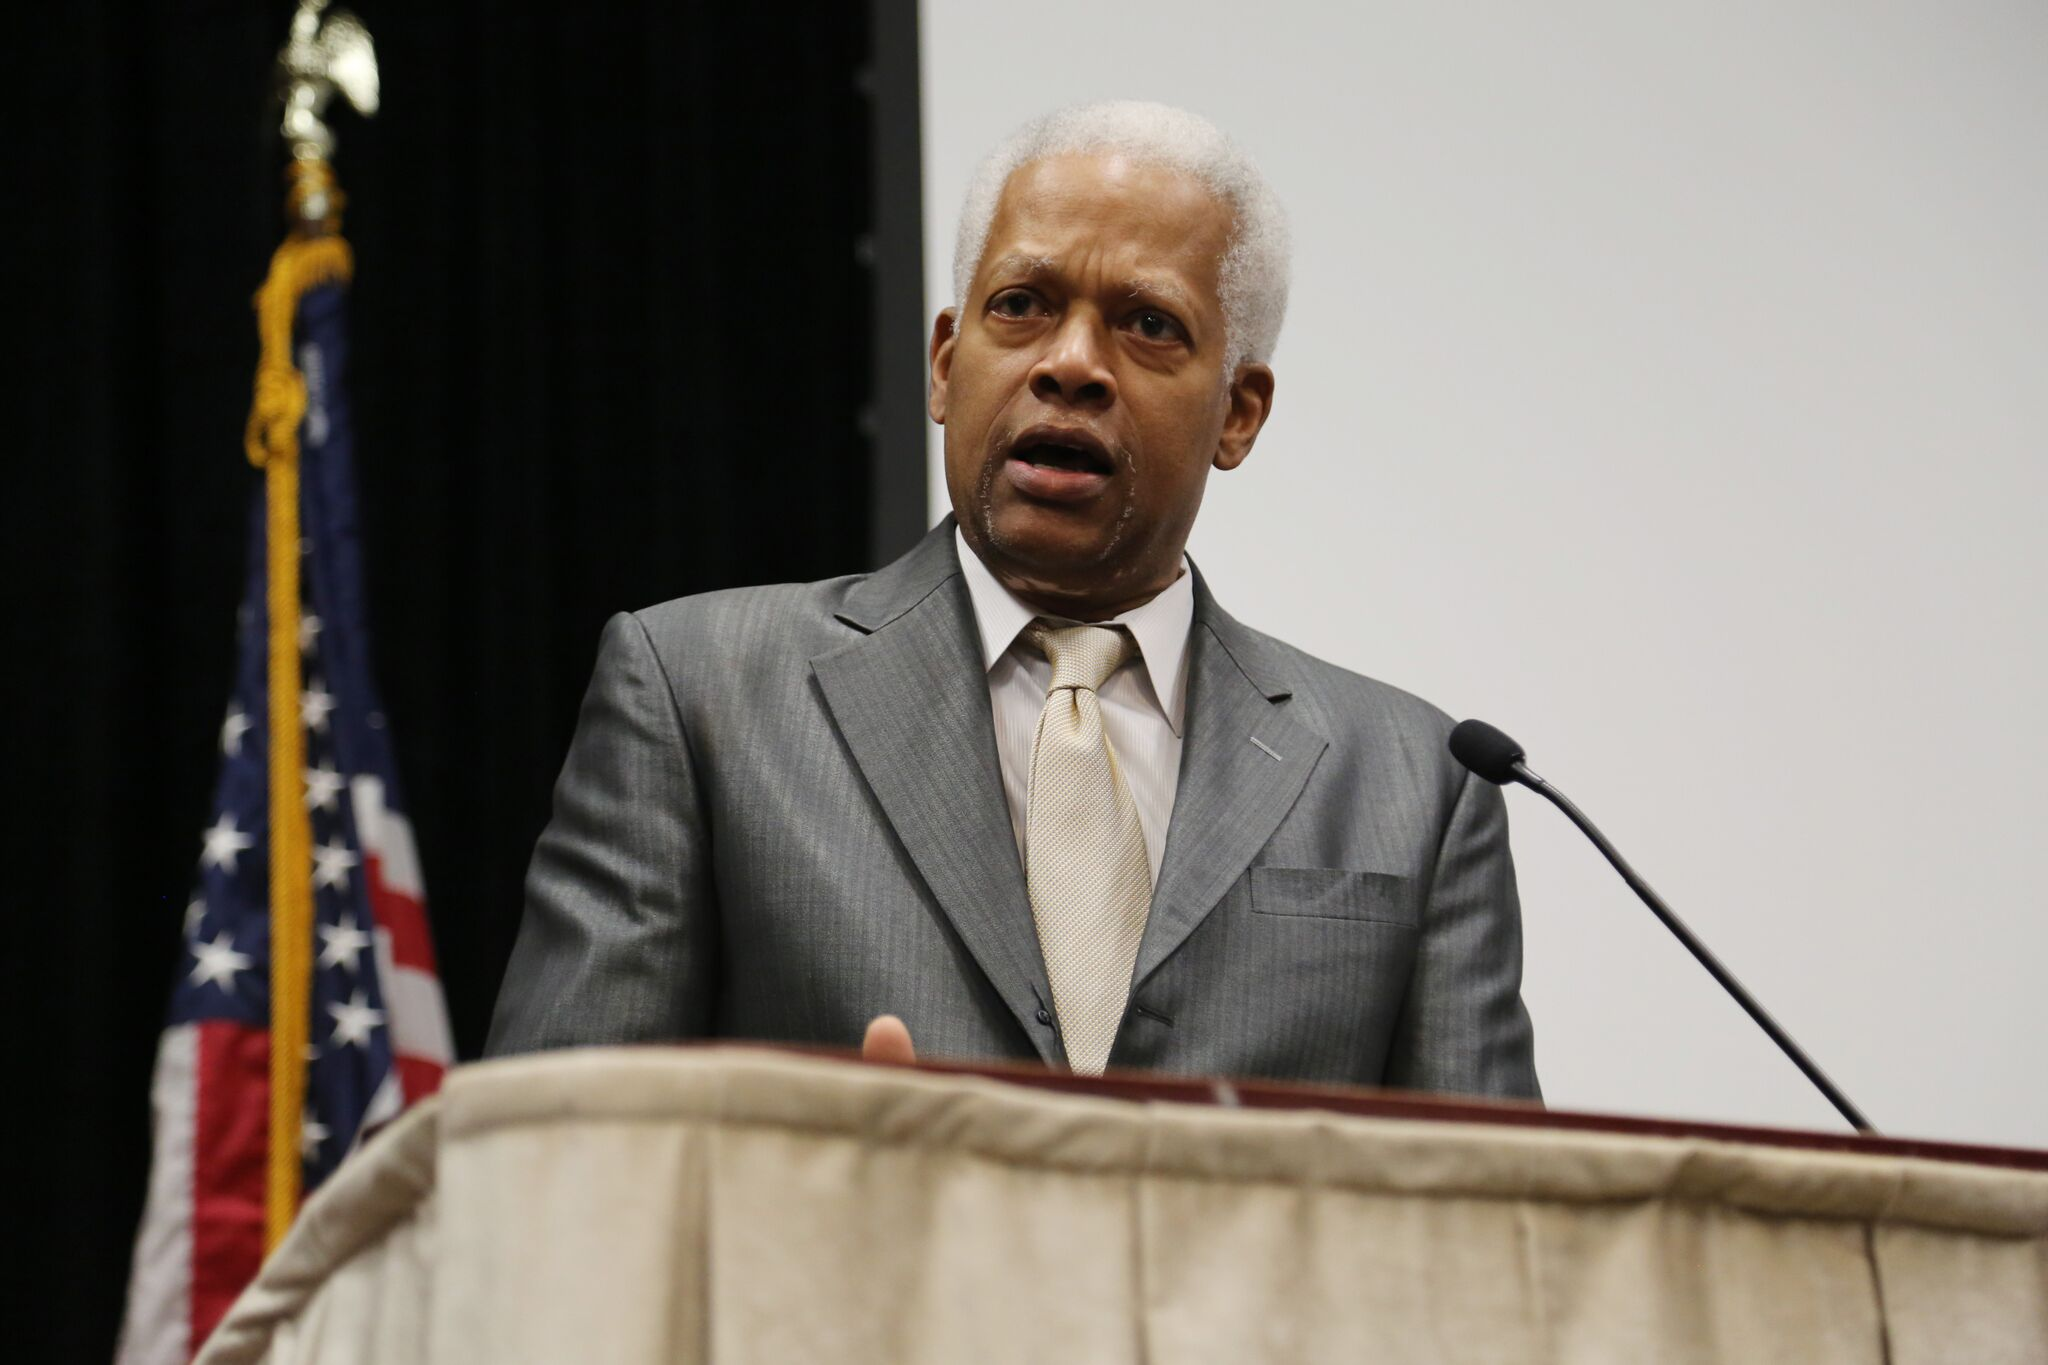 U.S. Congressman Hank Johnson